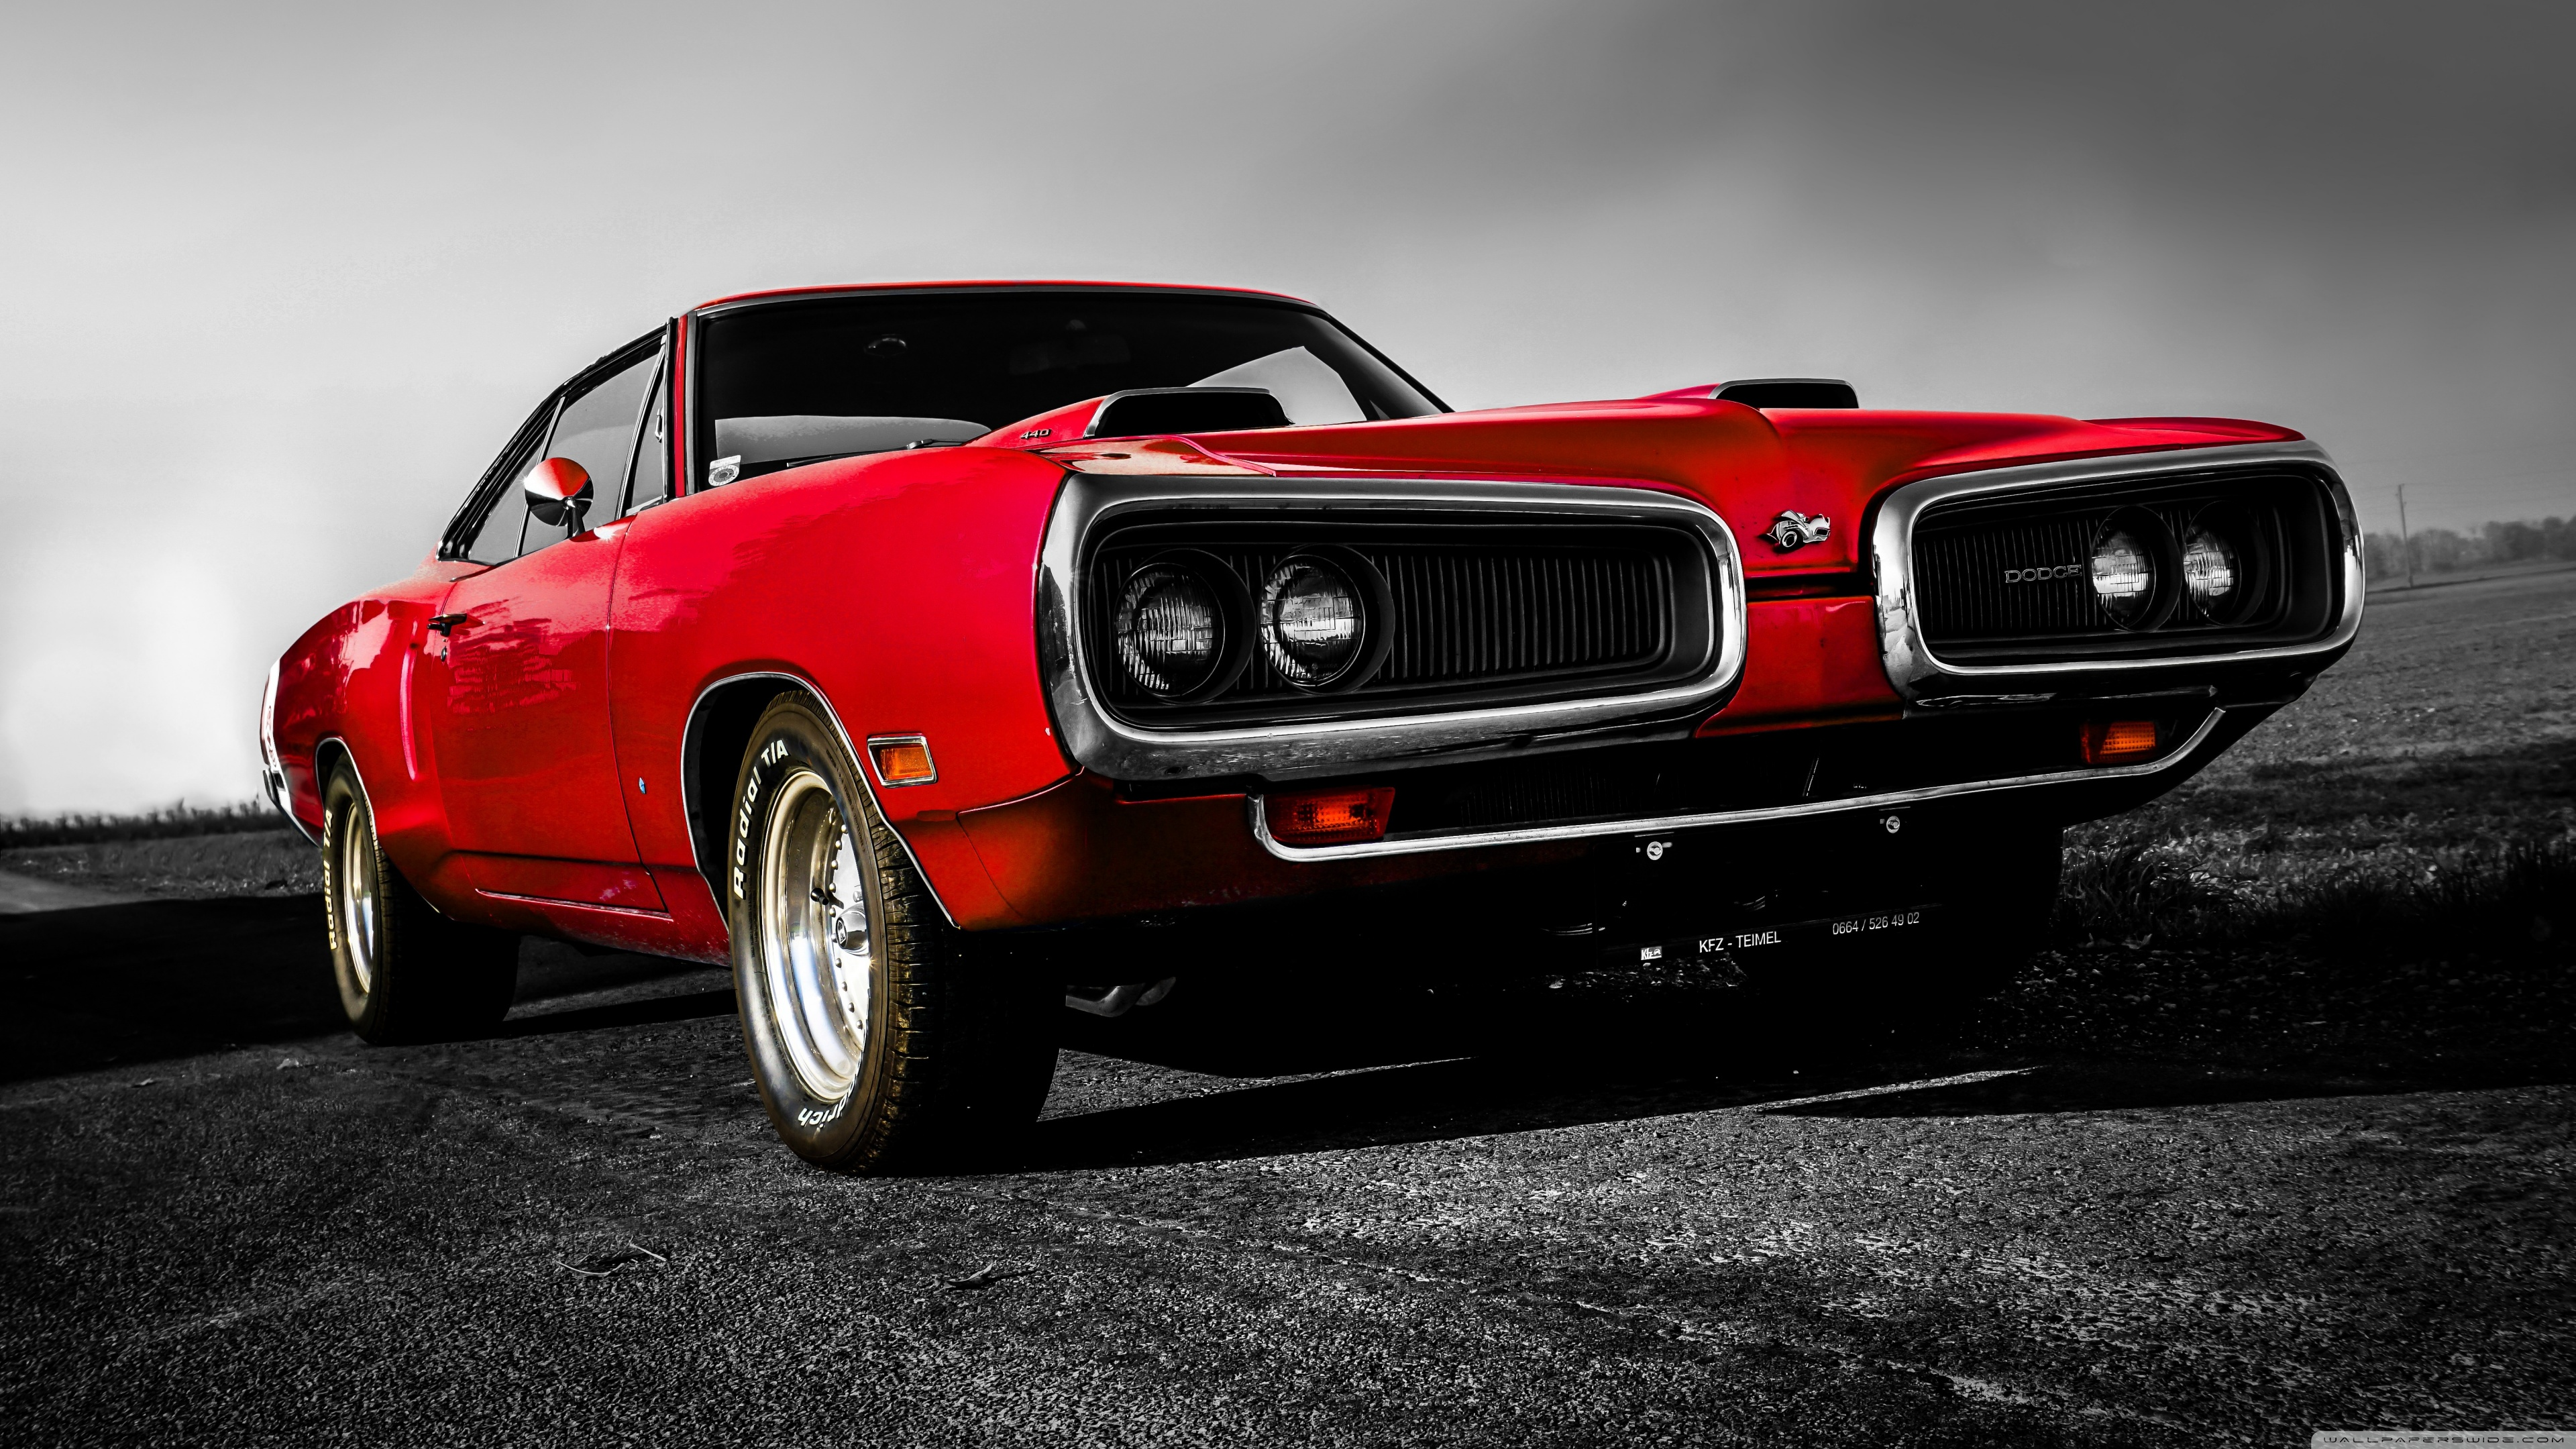 dodge 440 classic car wallpaper 3840×2160